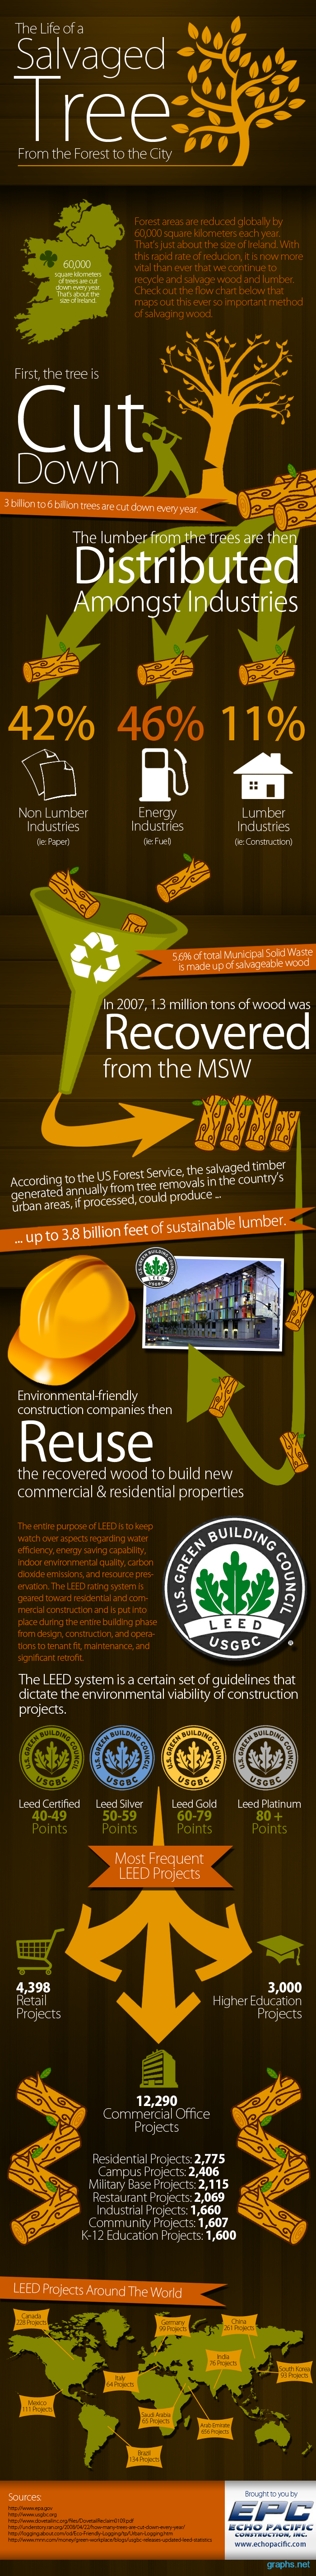 Cutting Down Trees Facts | Graphs.net  sc 1 st  Pinterest & Cutting Down Trees Facts | Graphs.net | Go Green Infographics ...